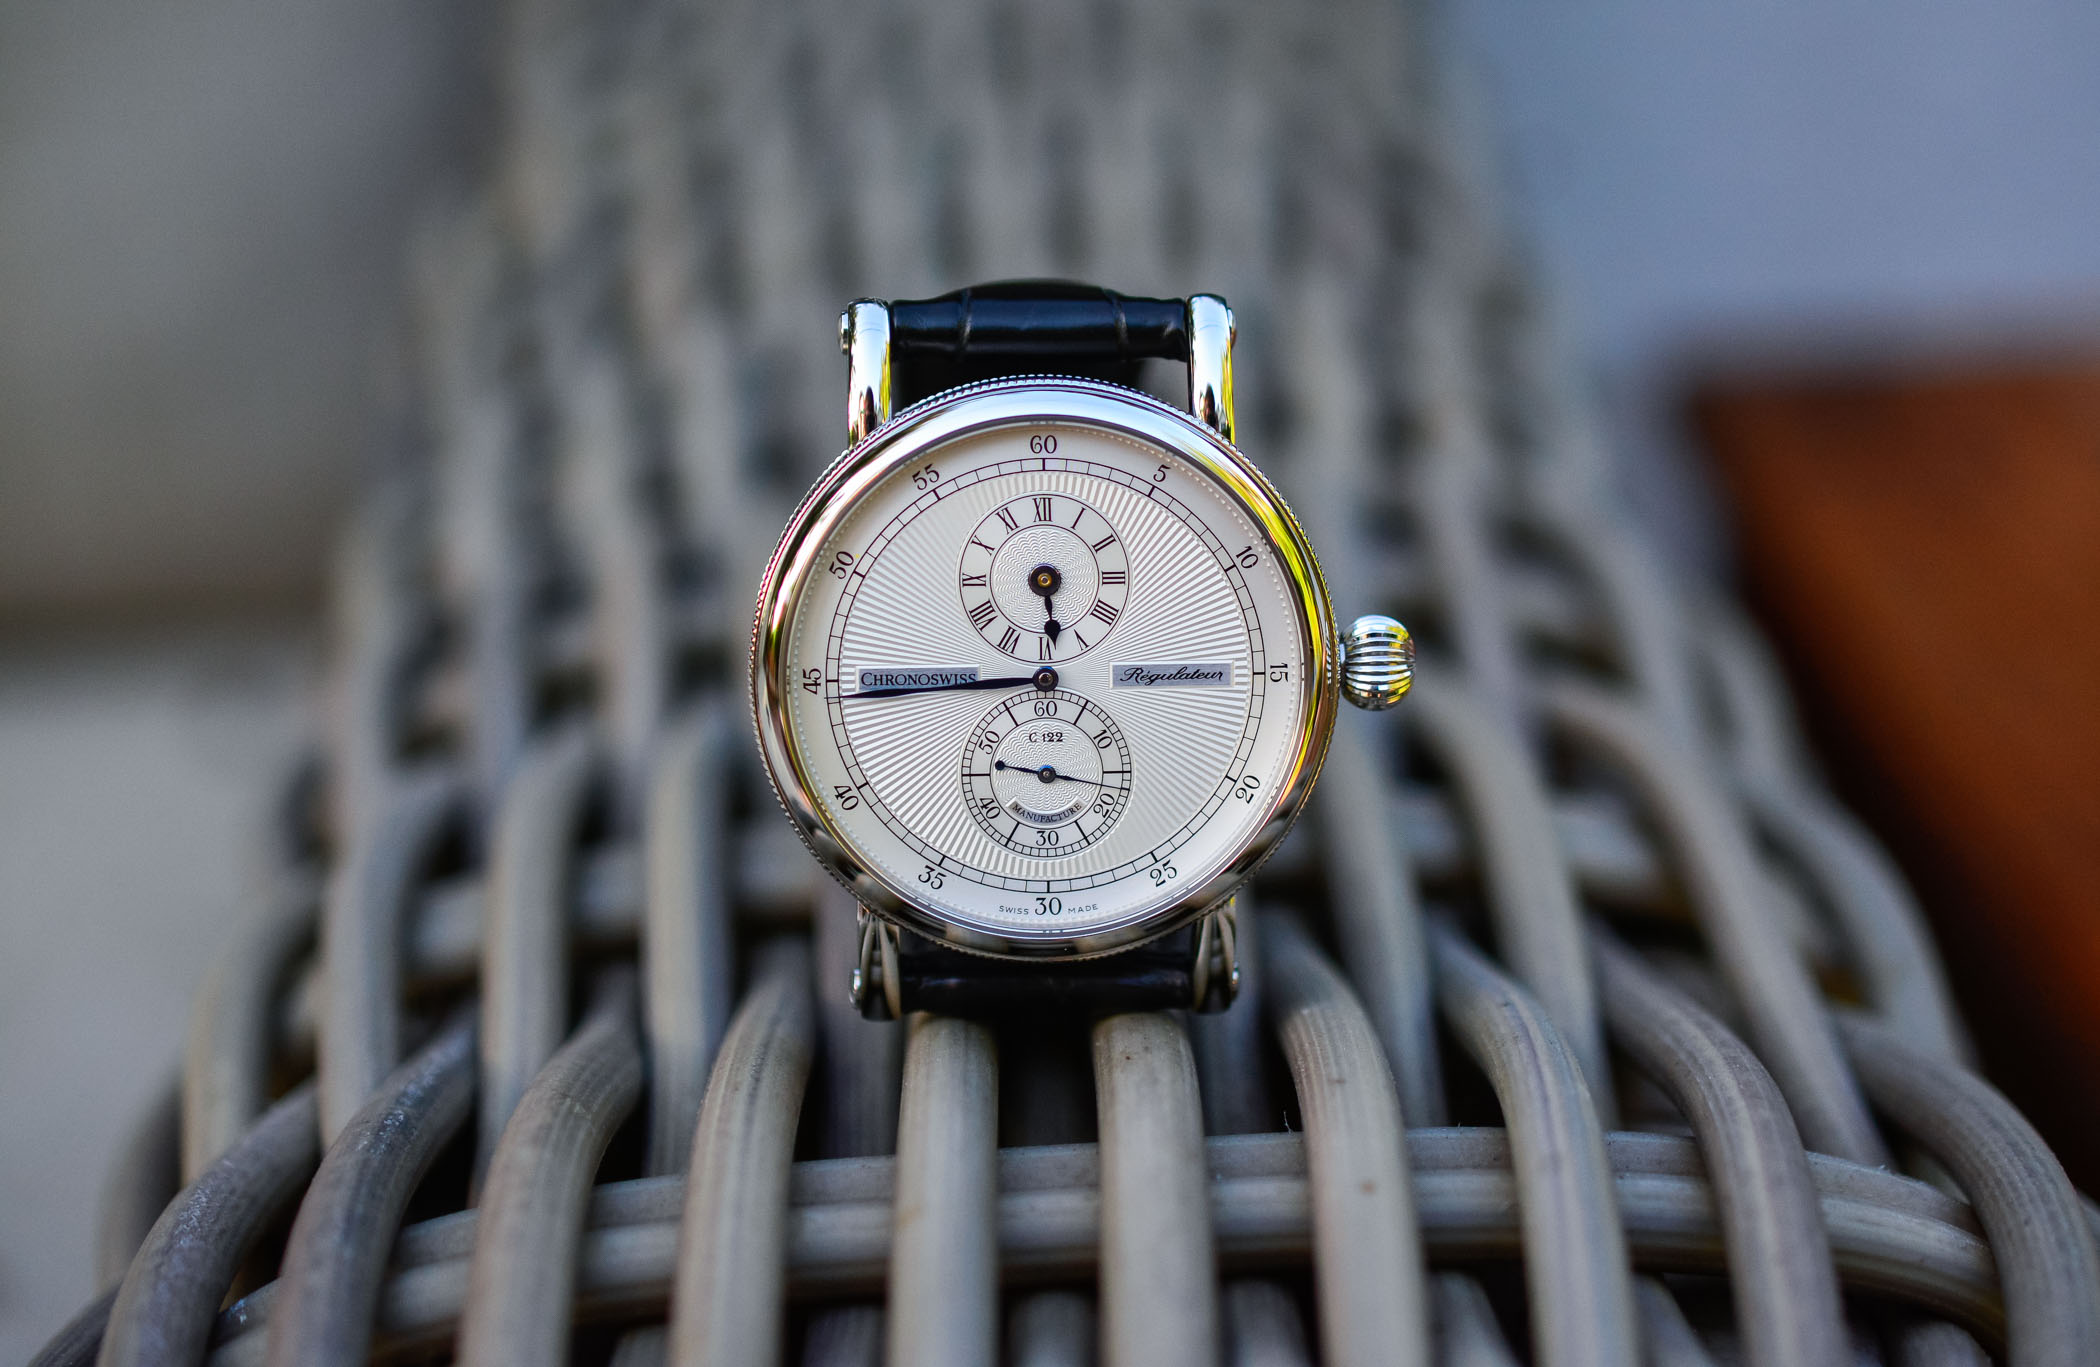 Chronoswiss Regulator Manufacture Review, Specs, Price